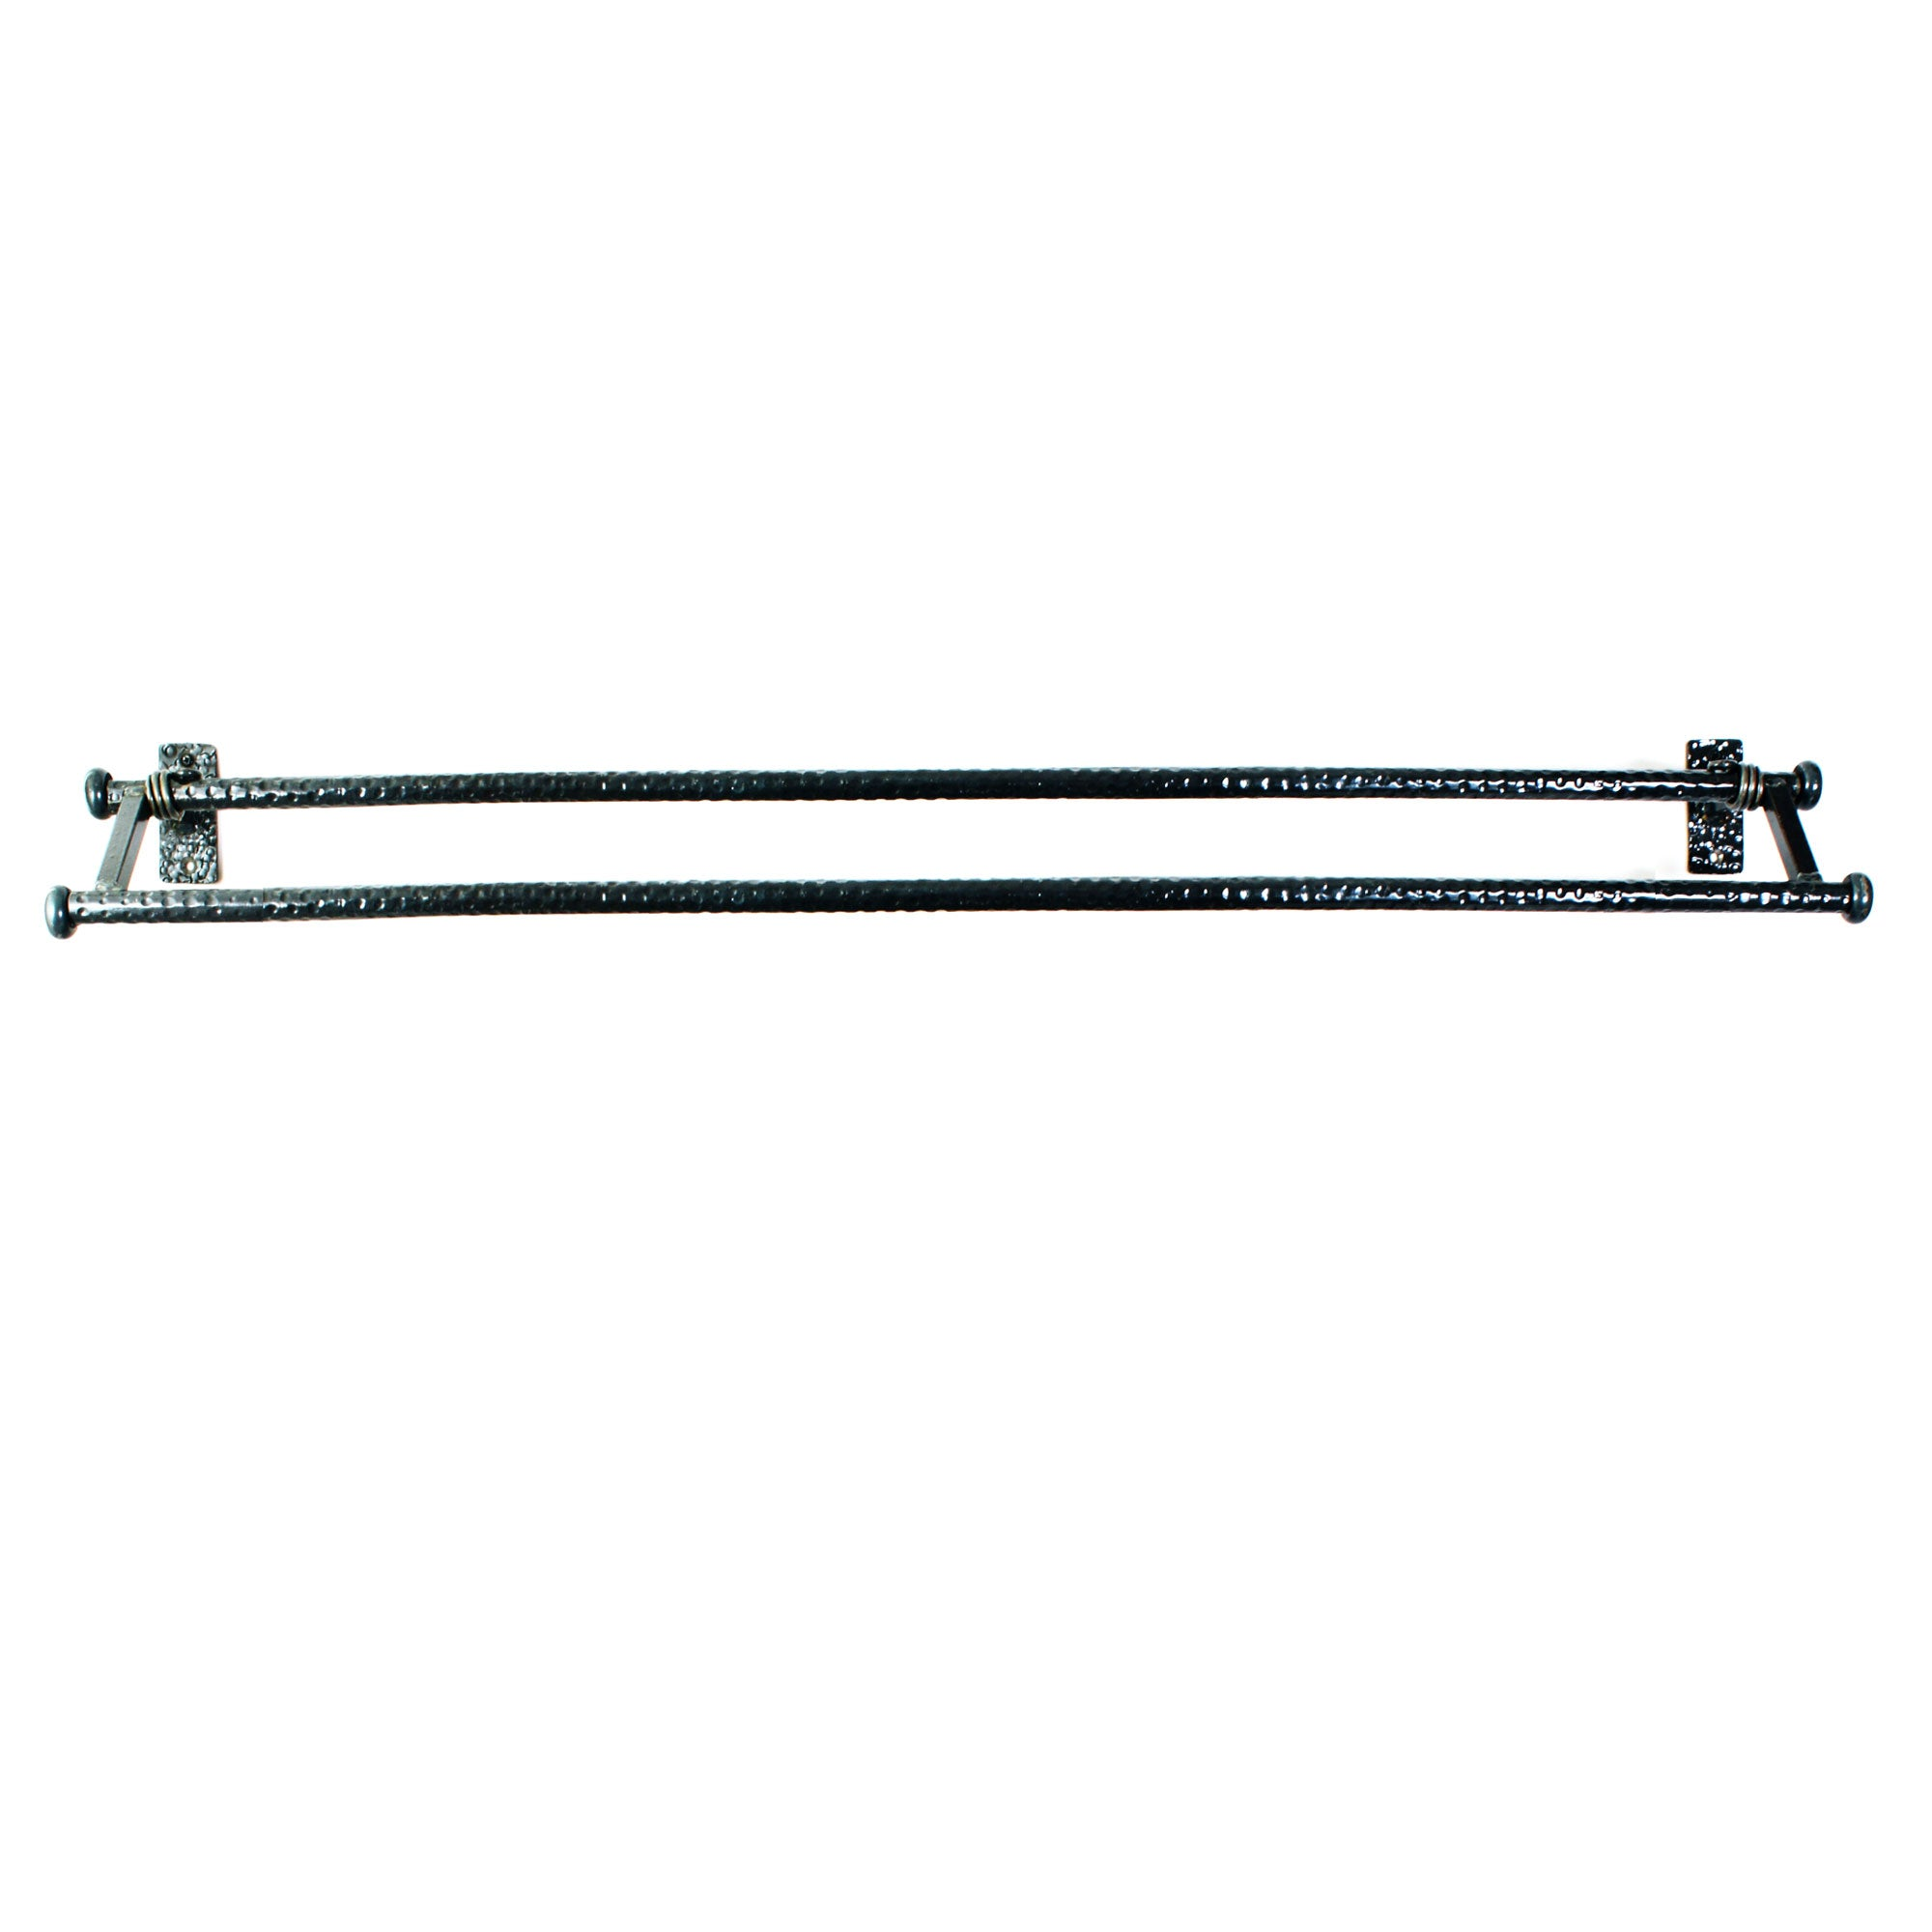 Double Towel Bar for Bathroom Walls -  Hand Forged